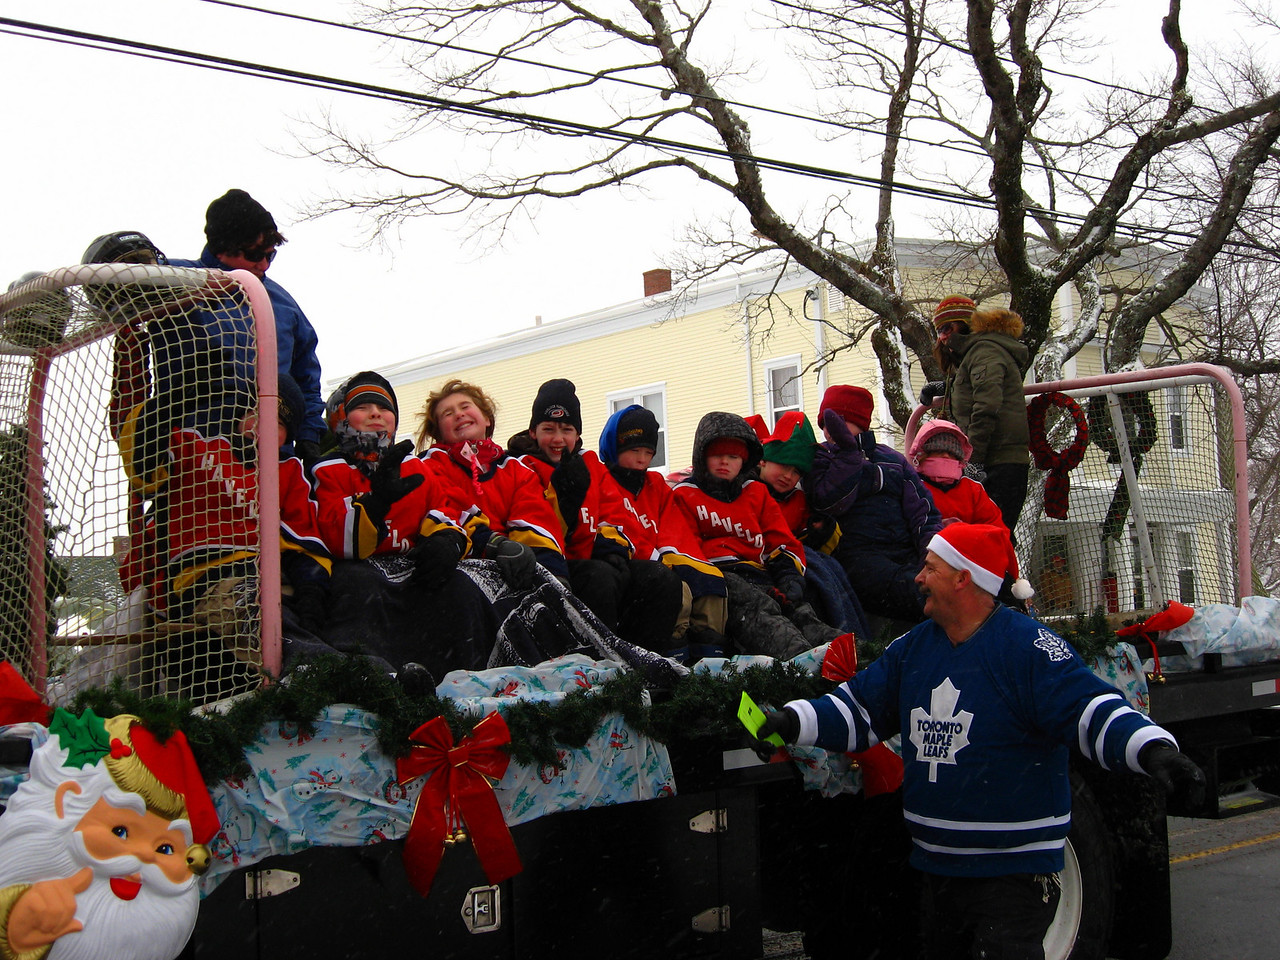 SANTA'S XMAS PARADE - Manawagonish Rd - Havelock Hurricanes Hockey team